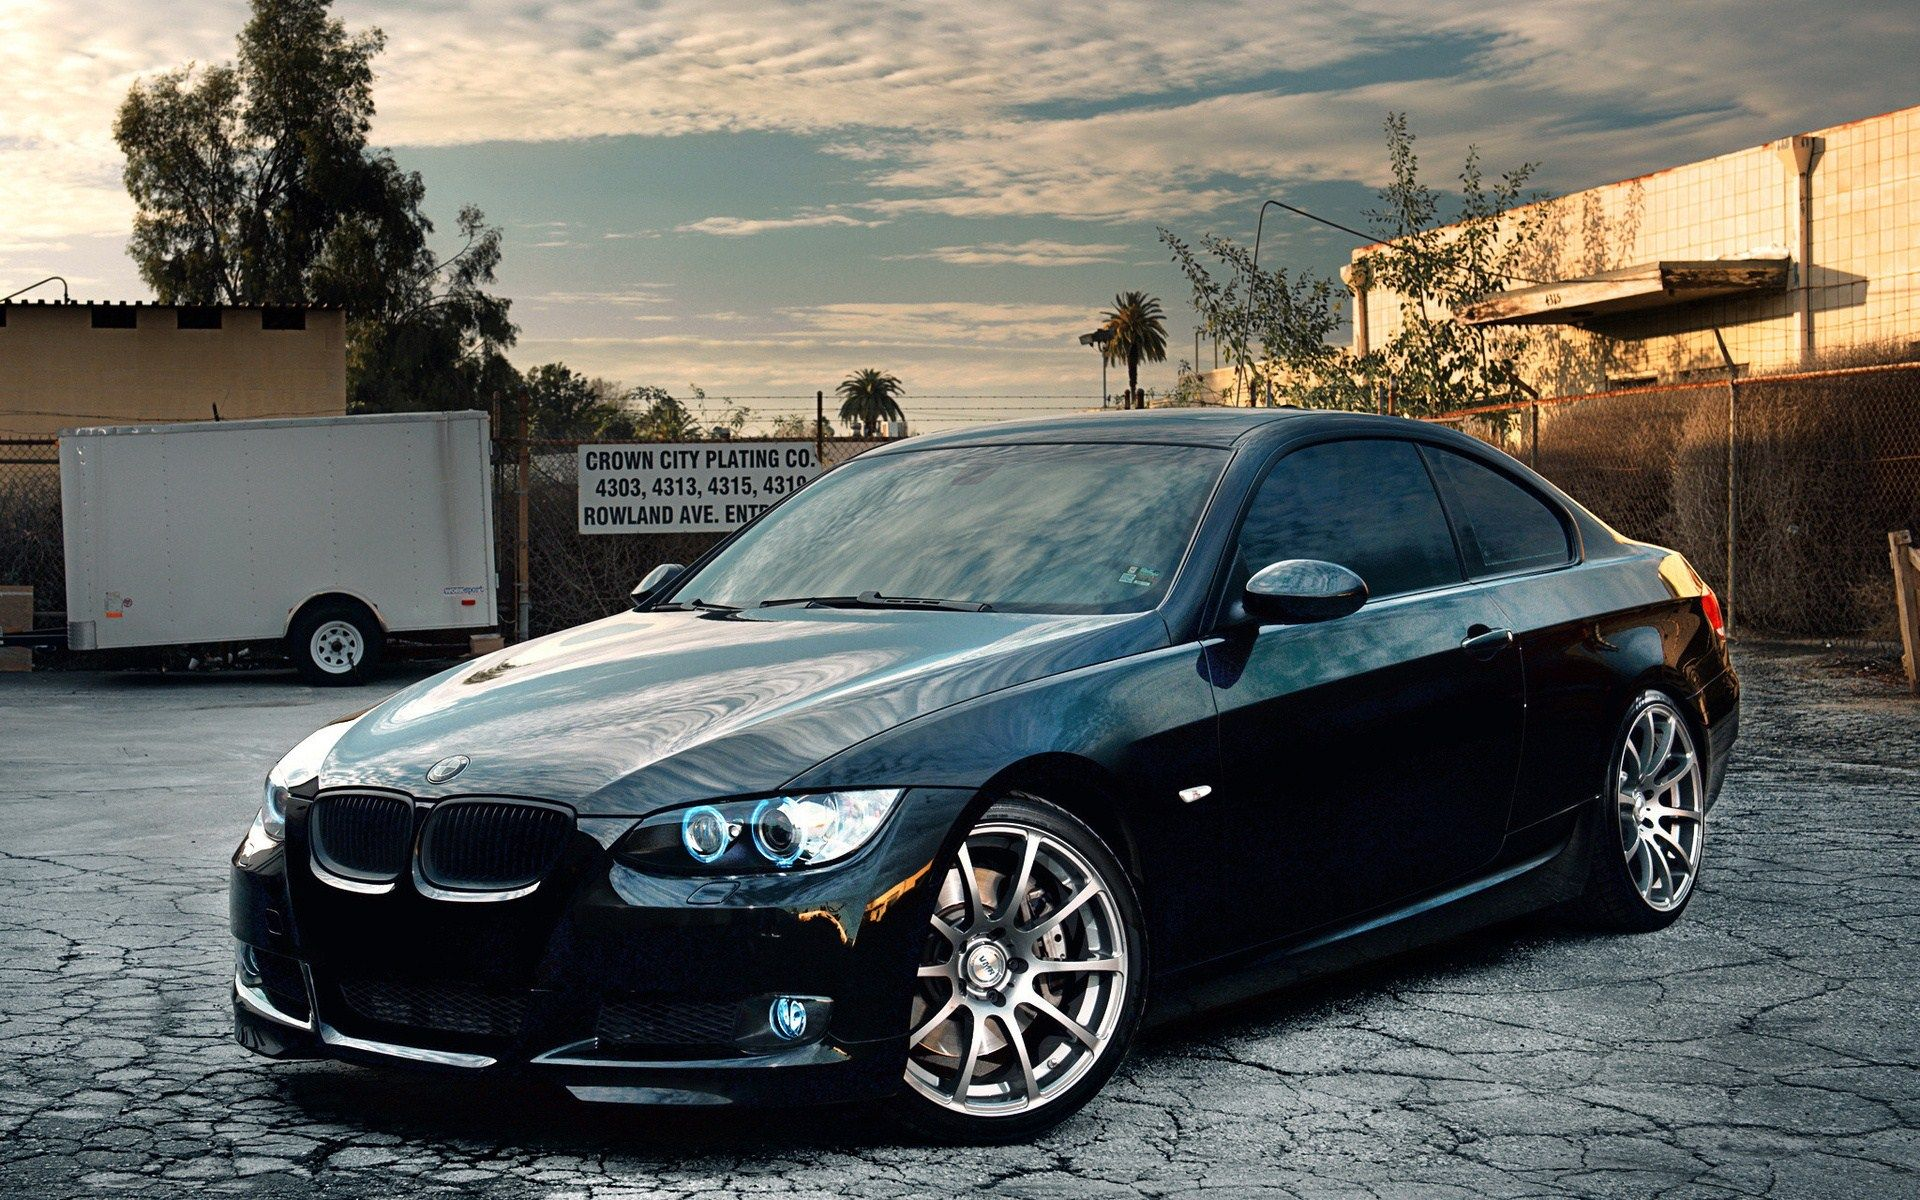 Bmw 335i coupe wallpaper 3